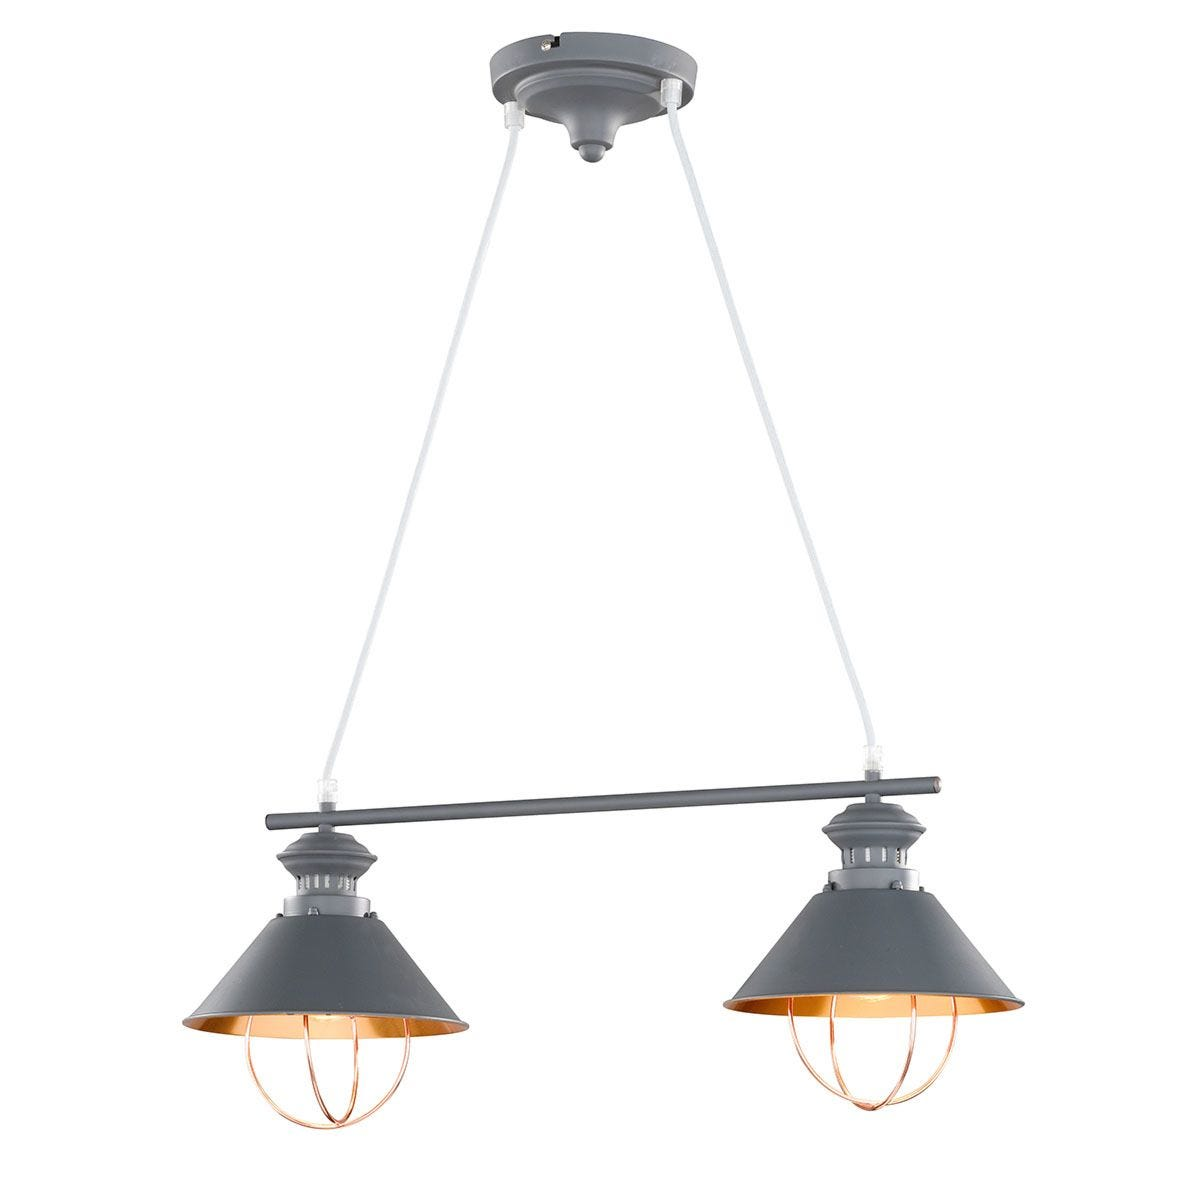 Wofi Florence 2-Light Pendant Bar/Spotlight - Grey